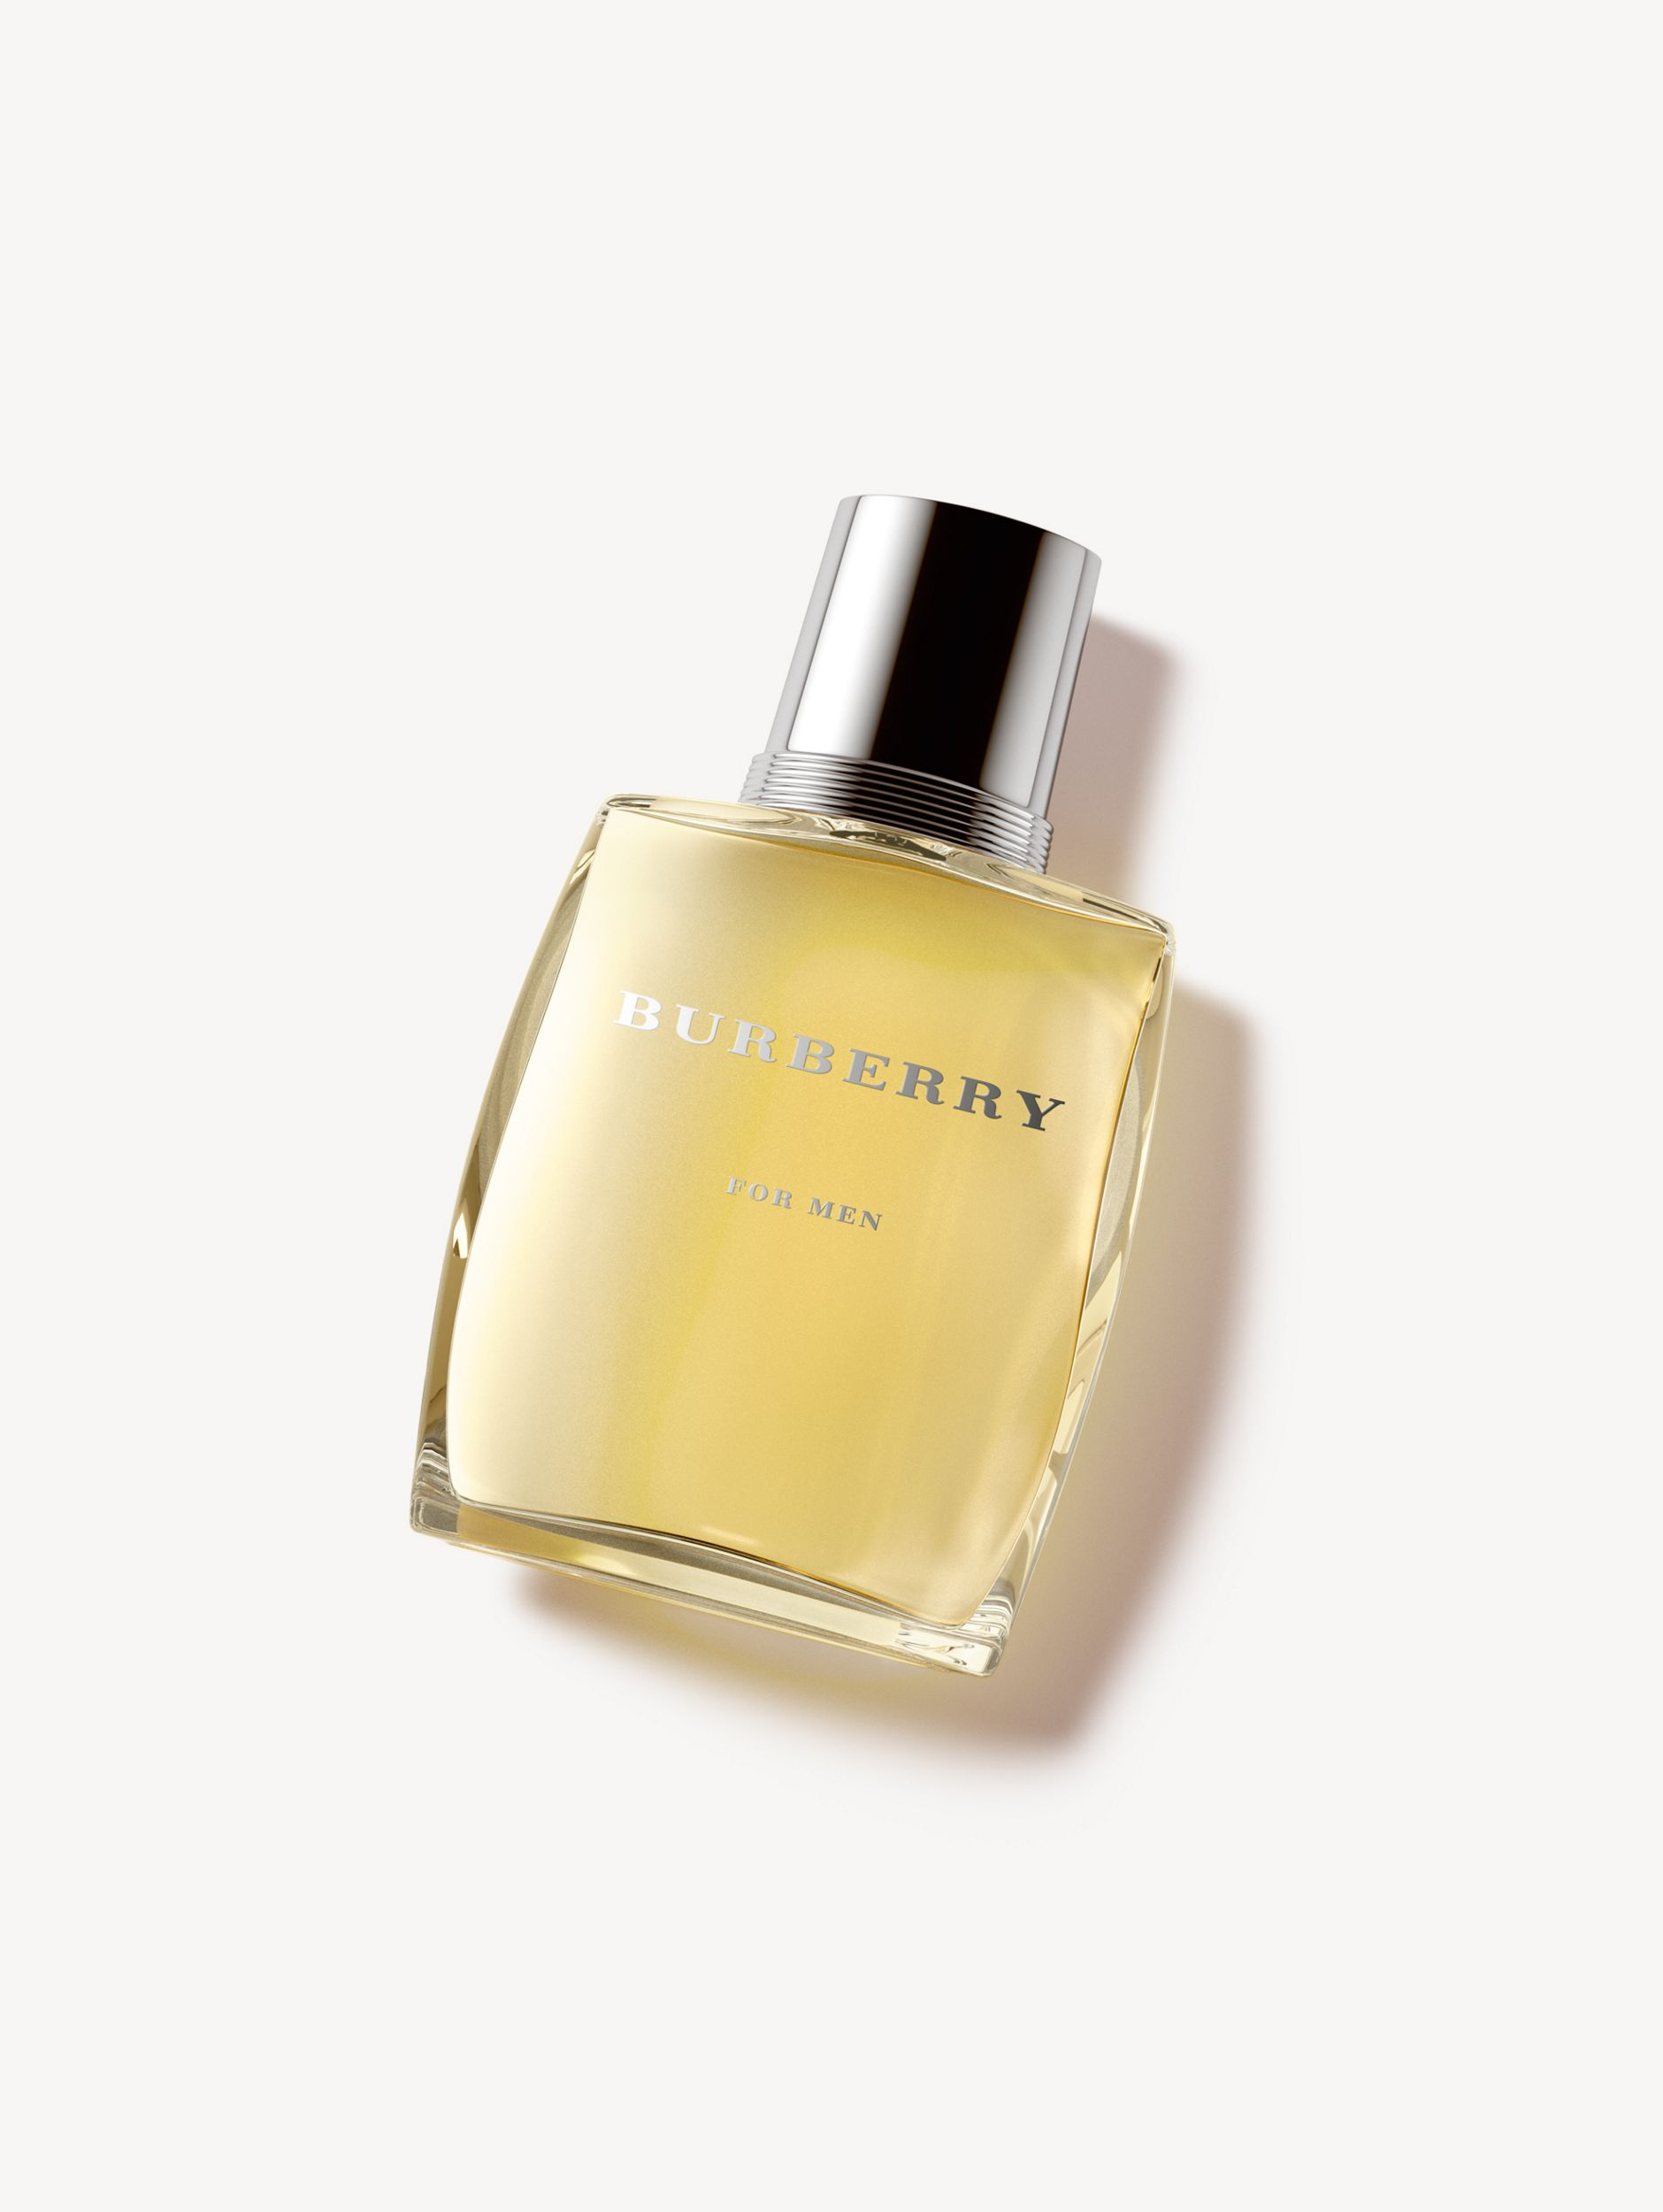 Burberry For Men Eau de Toilette 100ml - Men | Burberry - 1